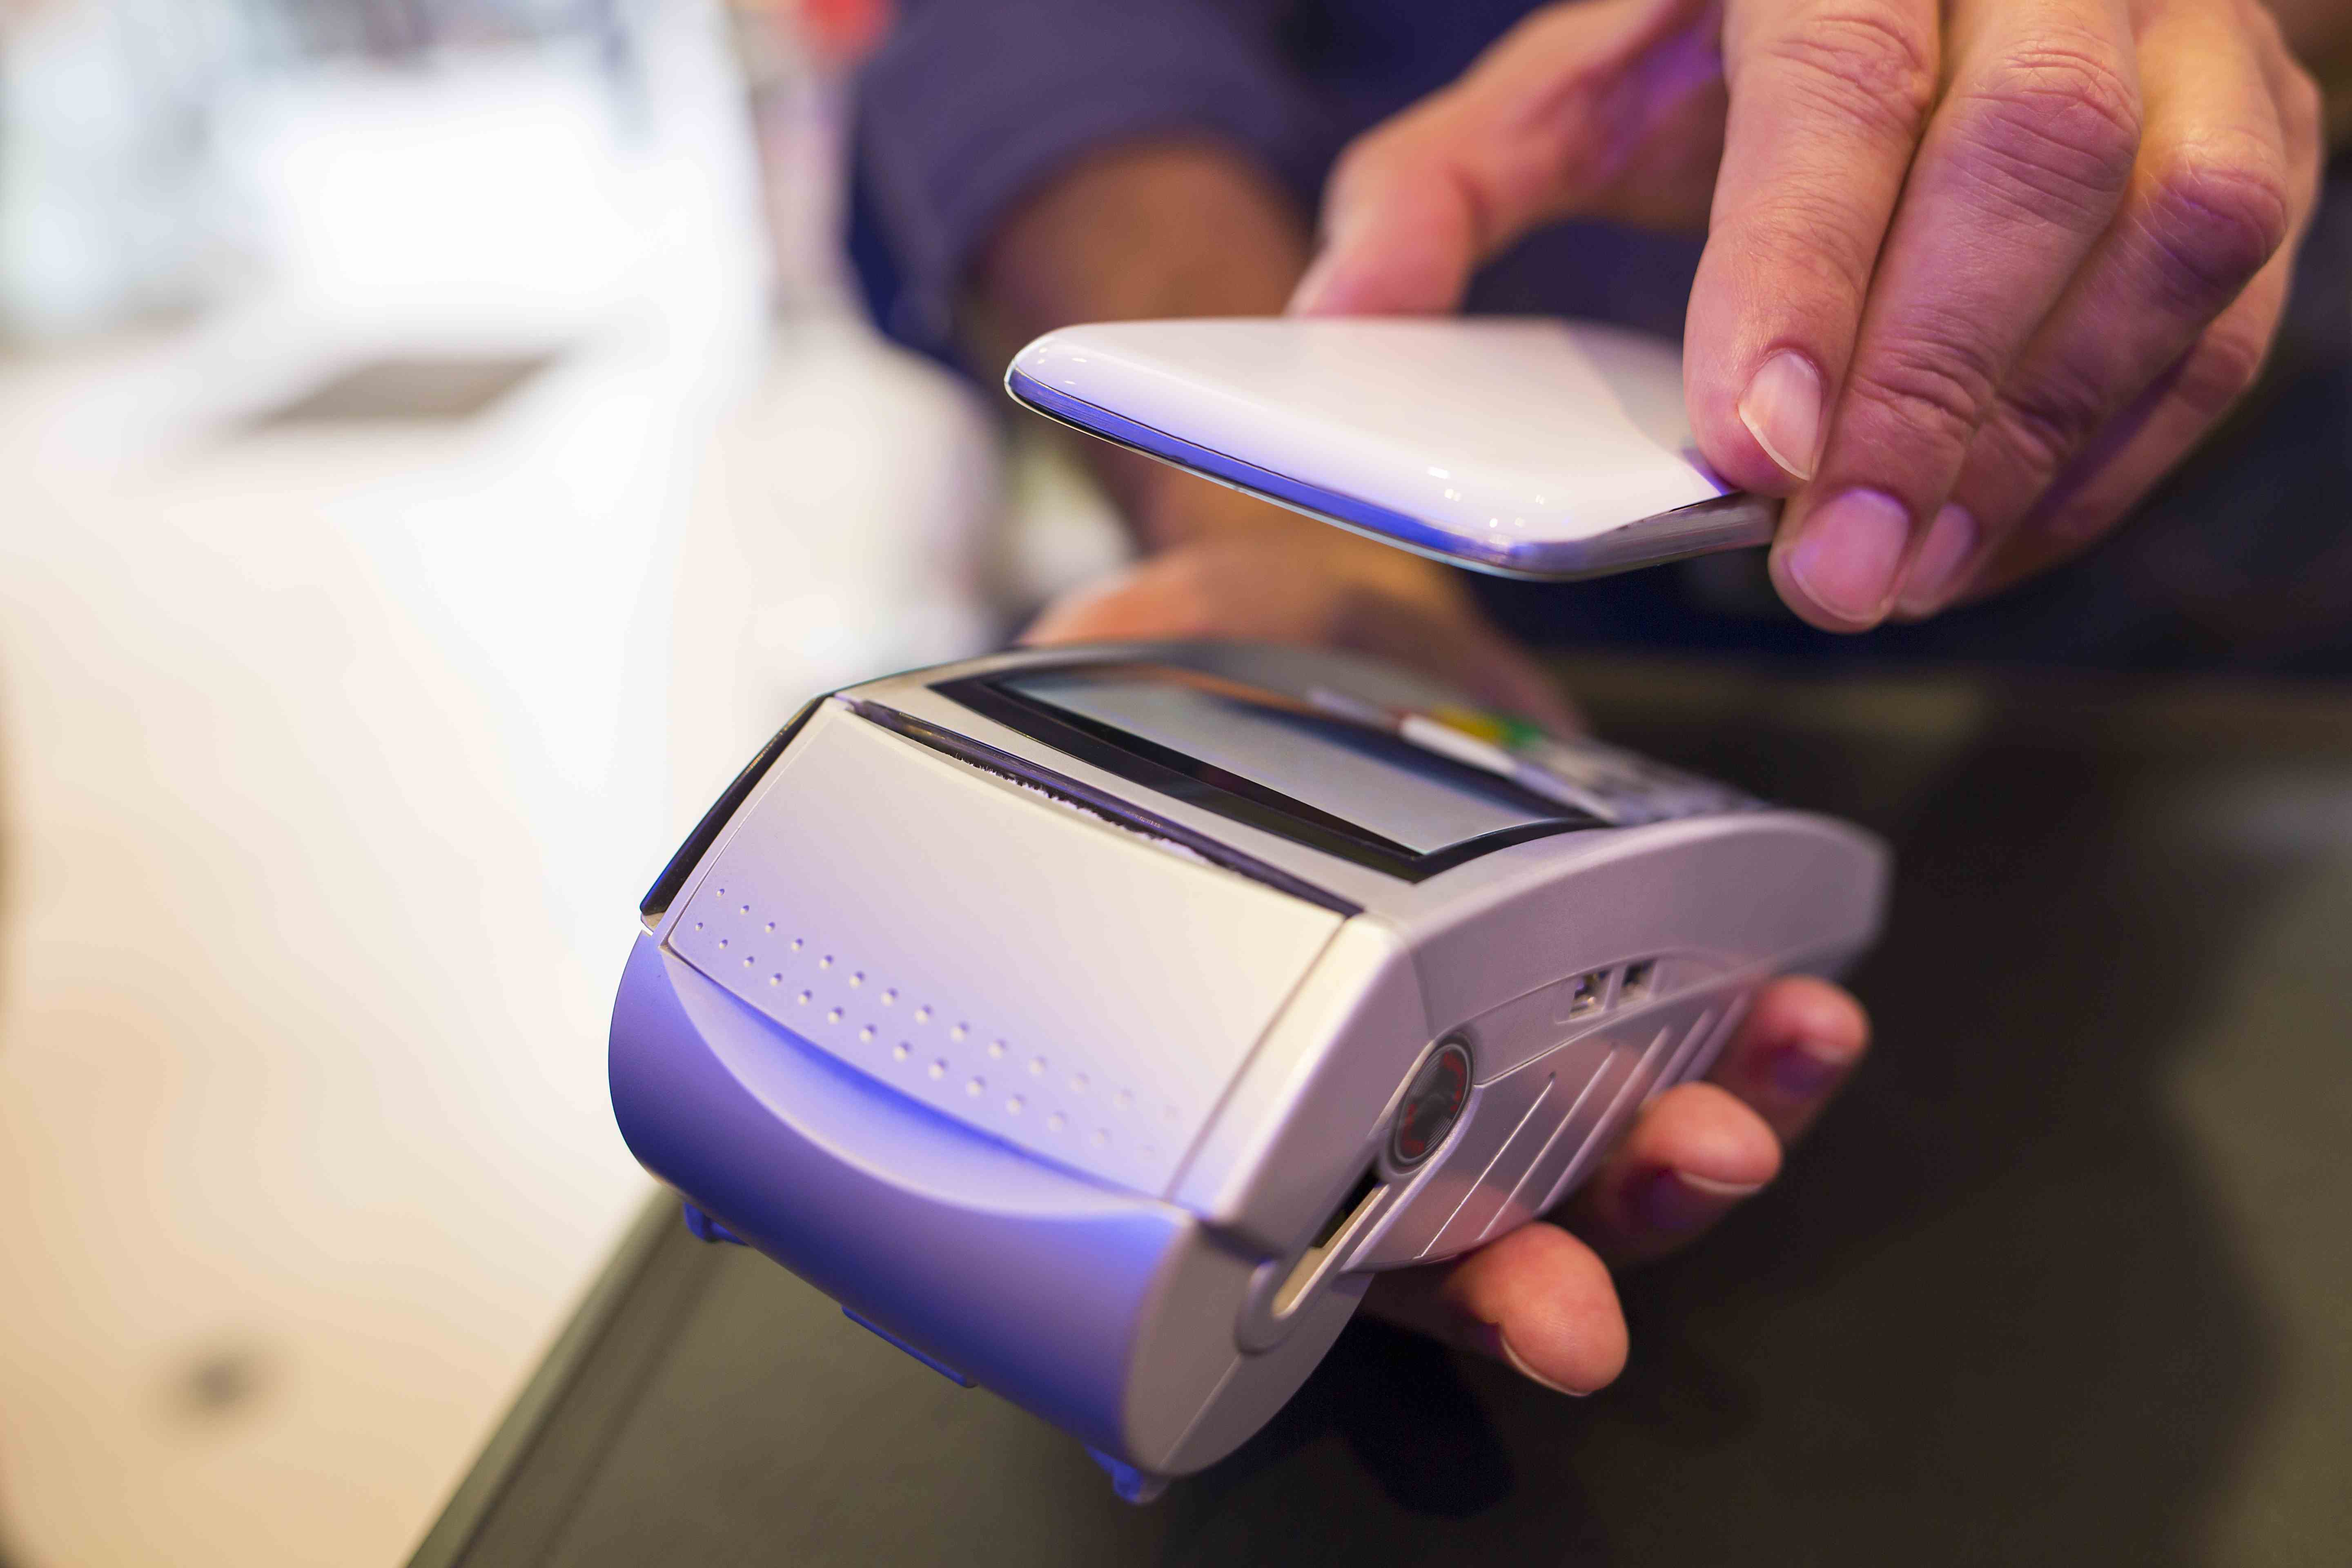 Circle Brings NFC to Android App for Touchless Payments